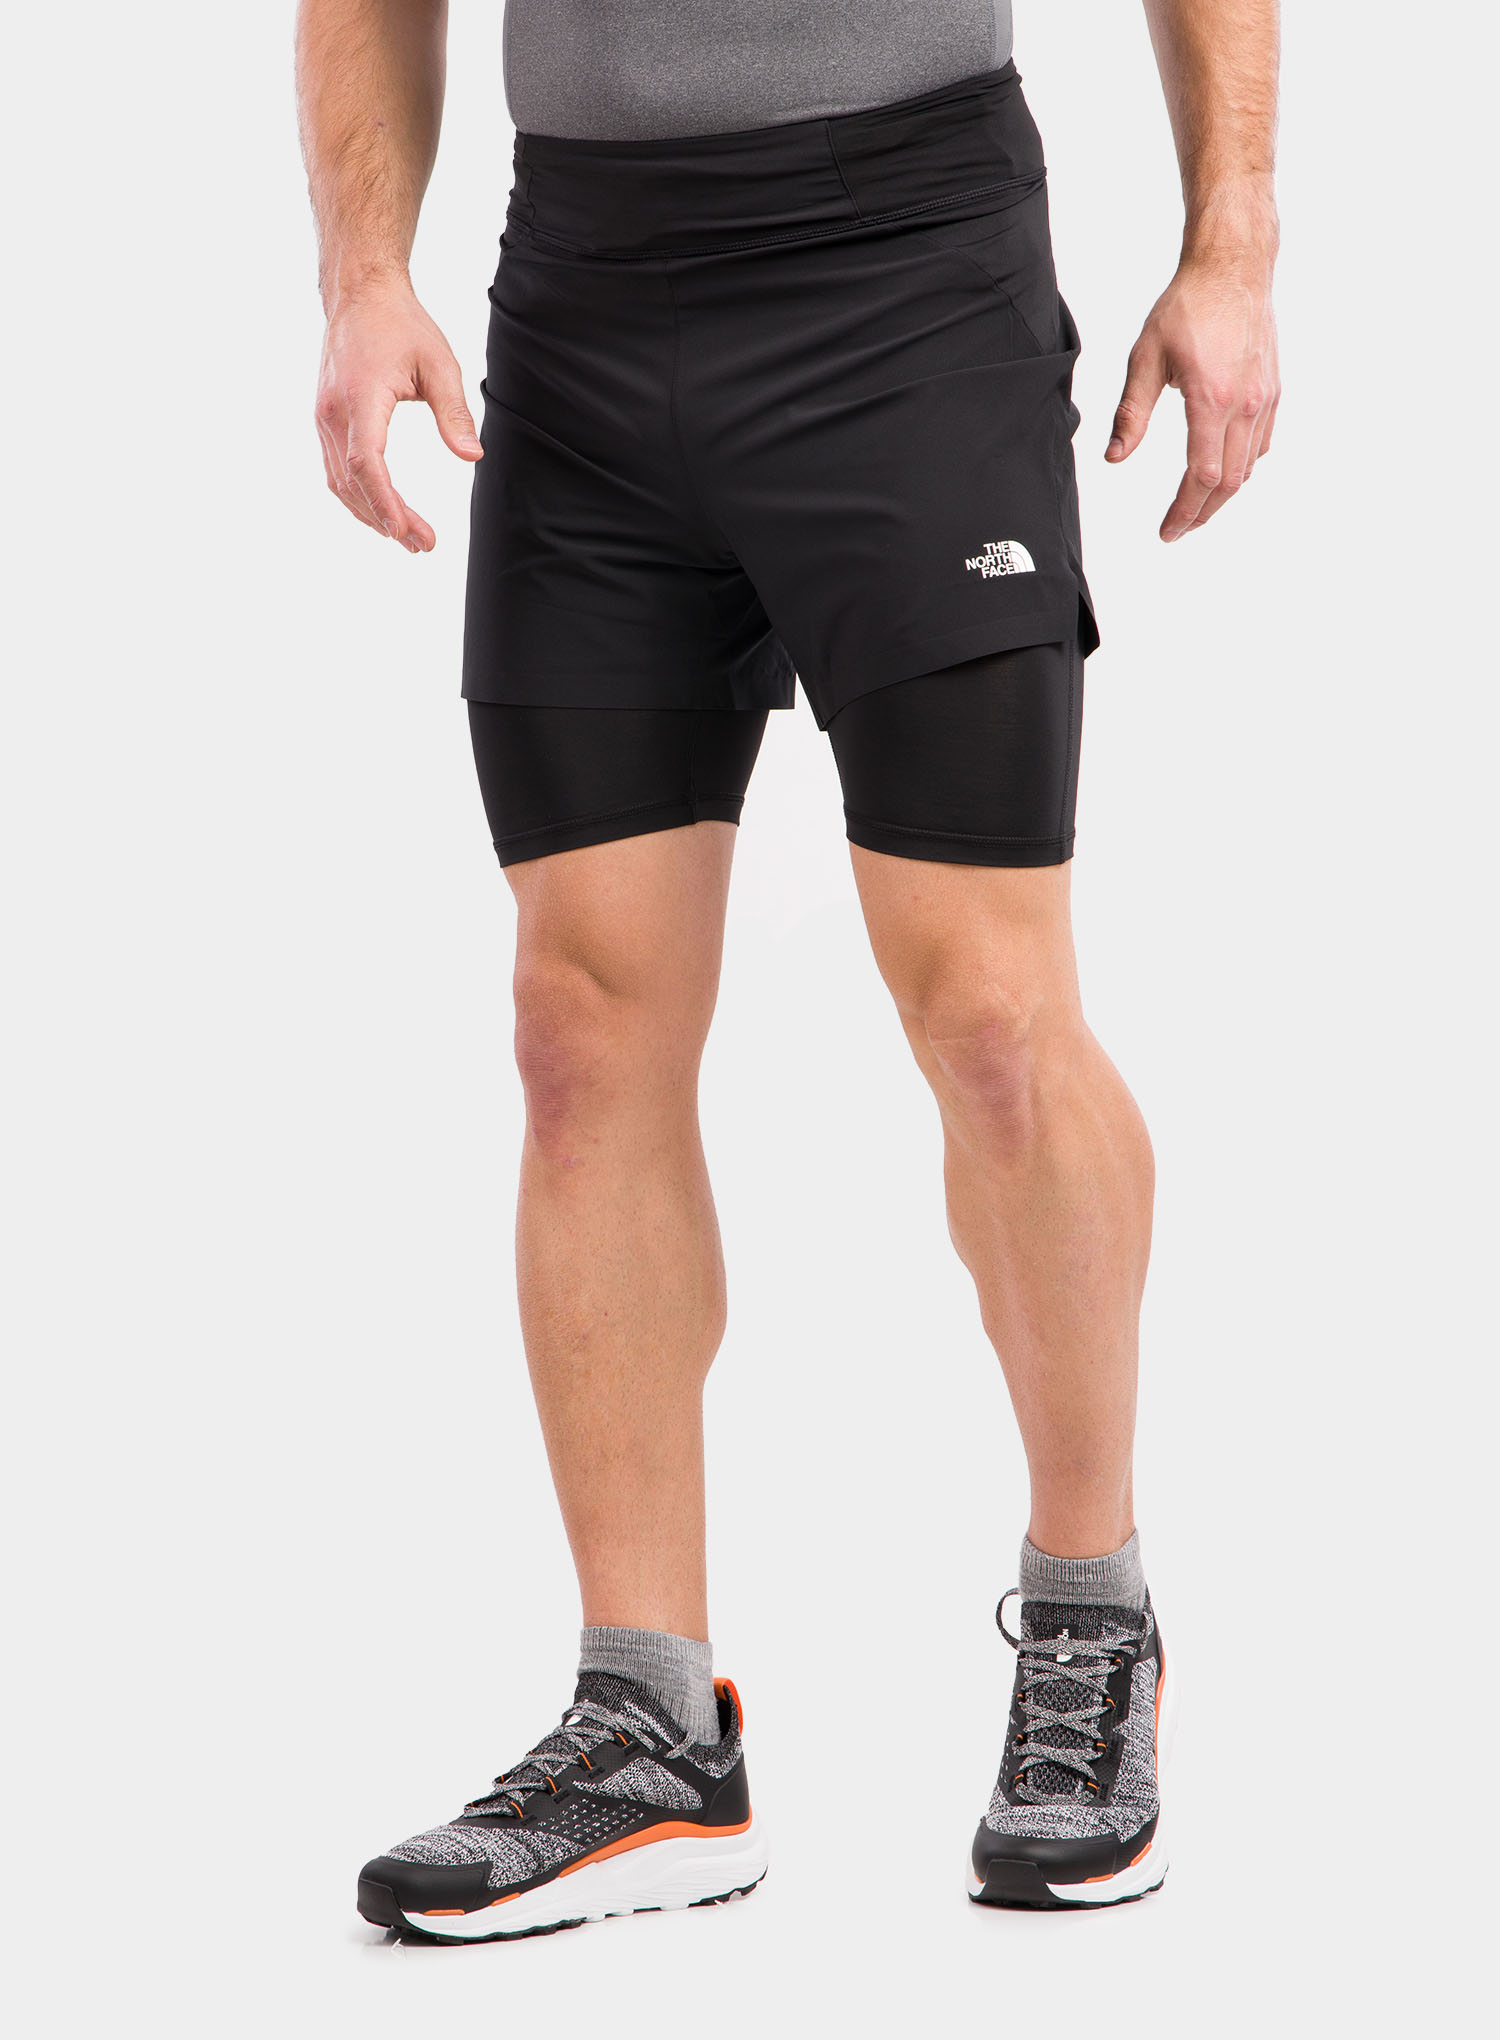 Spodenki The North Face Circadian Comp Lined Short - black - zdjęcie nr. 1